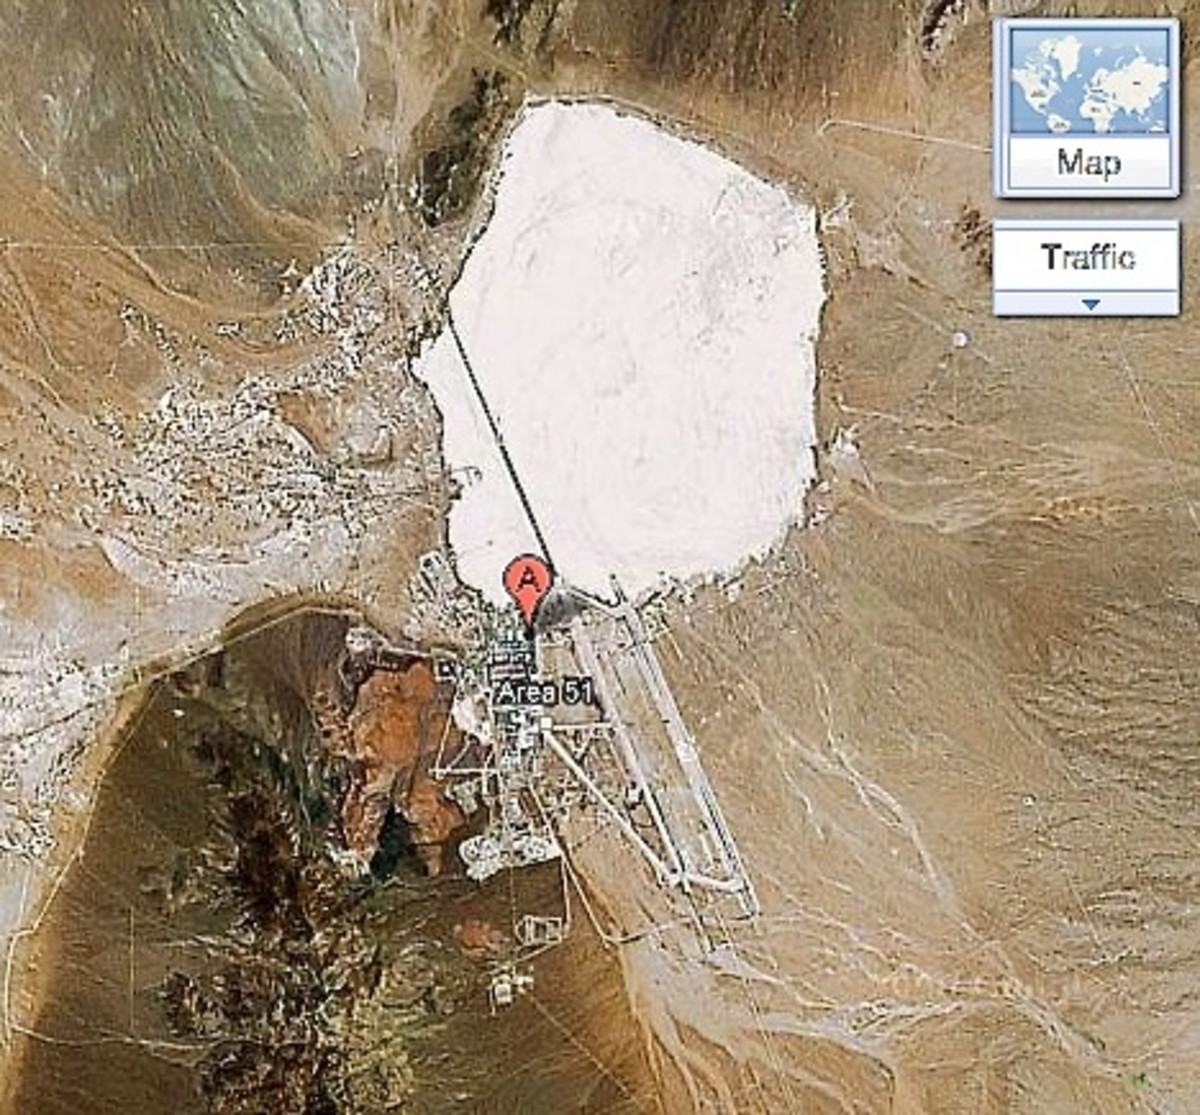 Area 51 - The Truth, Myths and Legends